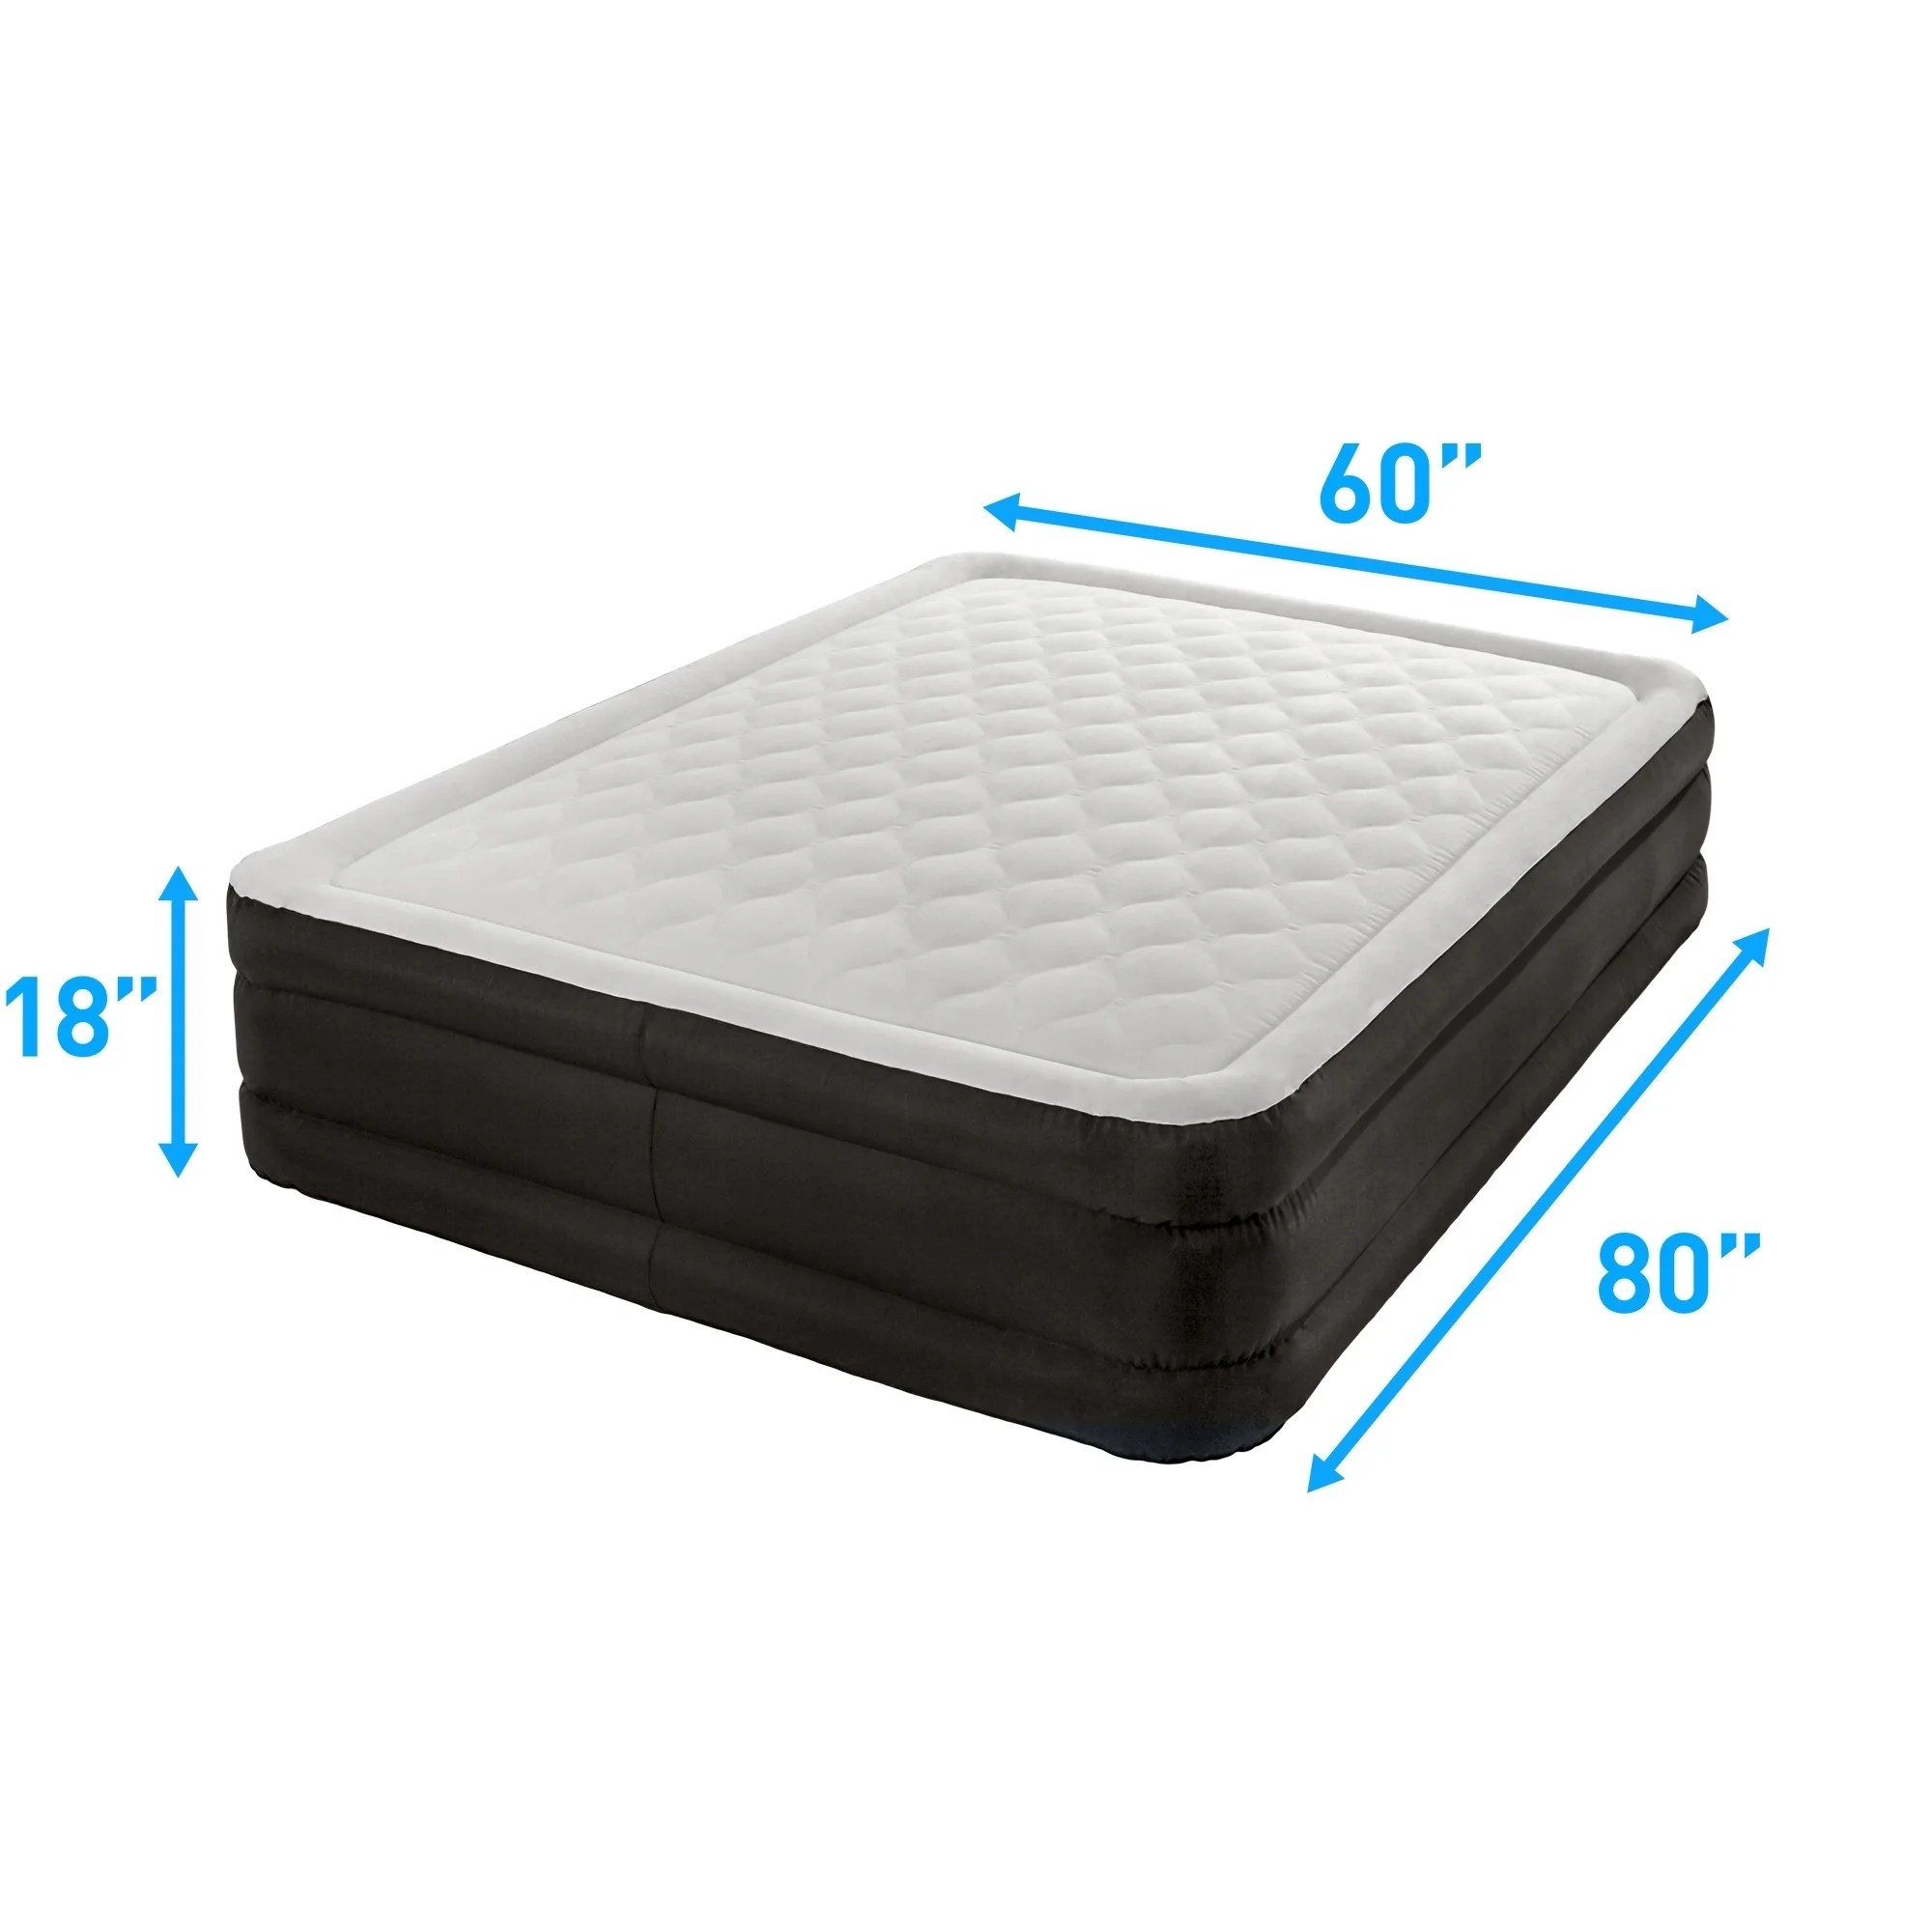 Air Mattress Frame Queen Air Comfort Deep Sleep Queen Raised Air Mattress Puncture Resistant Black